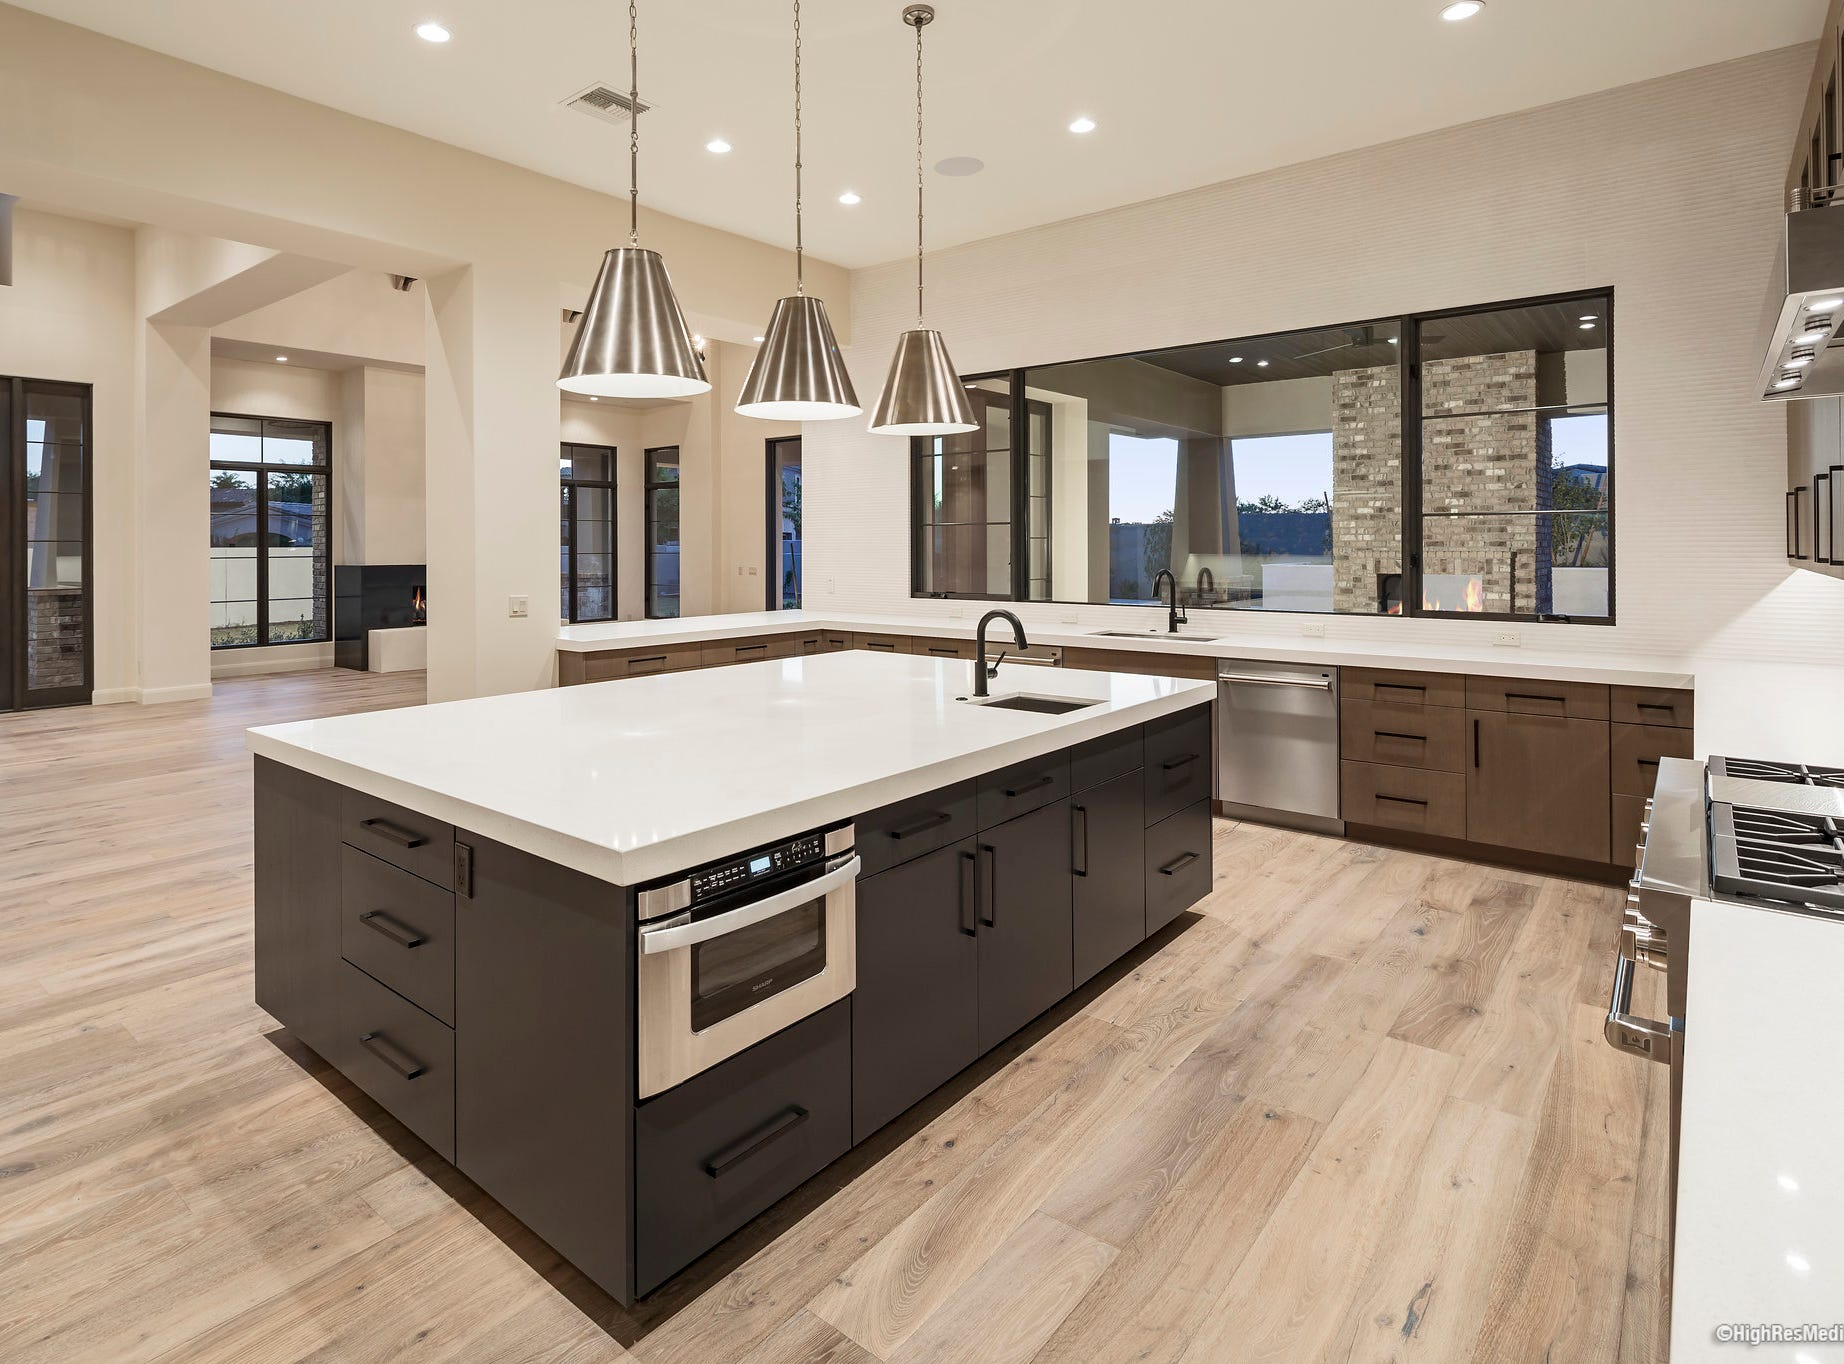 The house, purchased by Marc A. Lilley and Lisa M. Lilley, has an upgraded kitchen that includes white oak cabinetry, Wolf range, Subzero fridge, Asko duel dishwashers, and quartz counters.